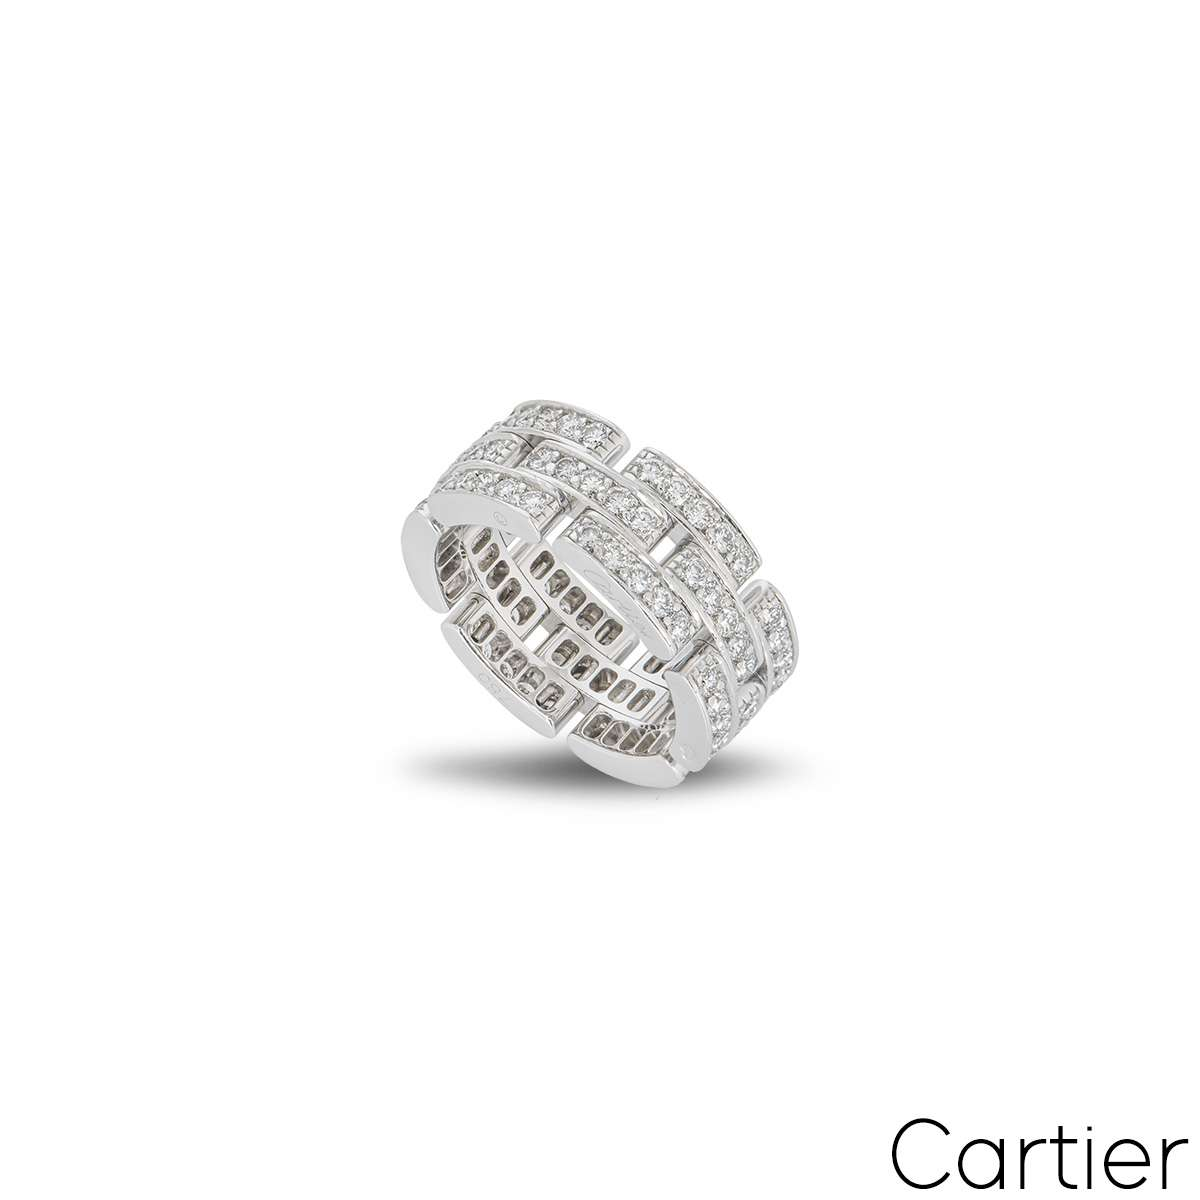 Cartier White Gold Maillon Panthere Ring B4111700